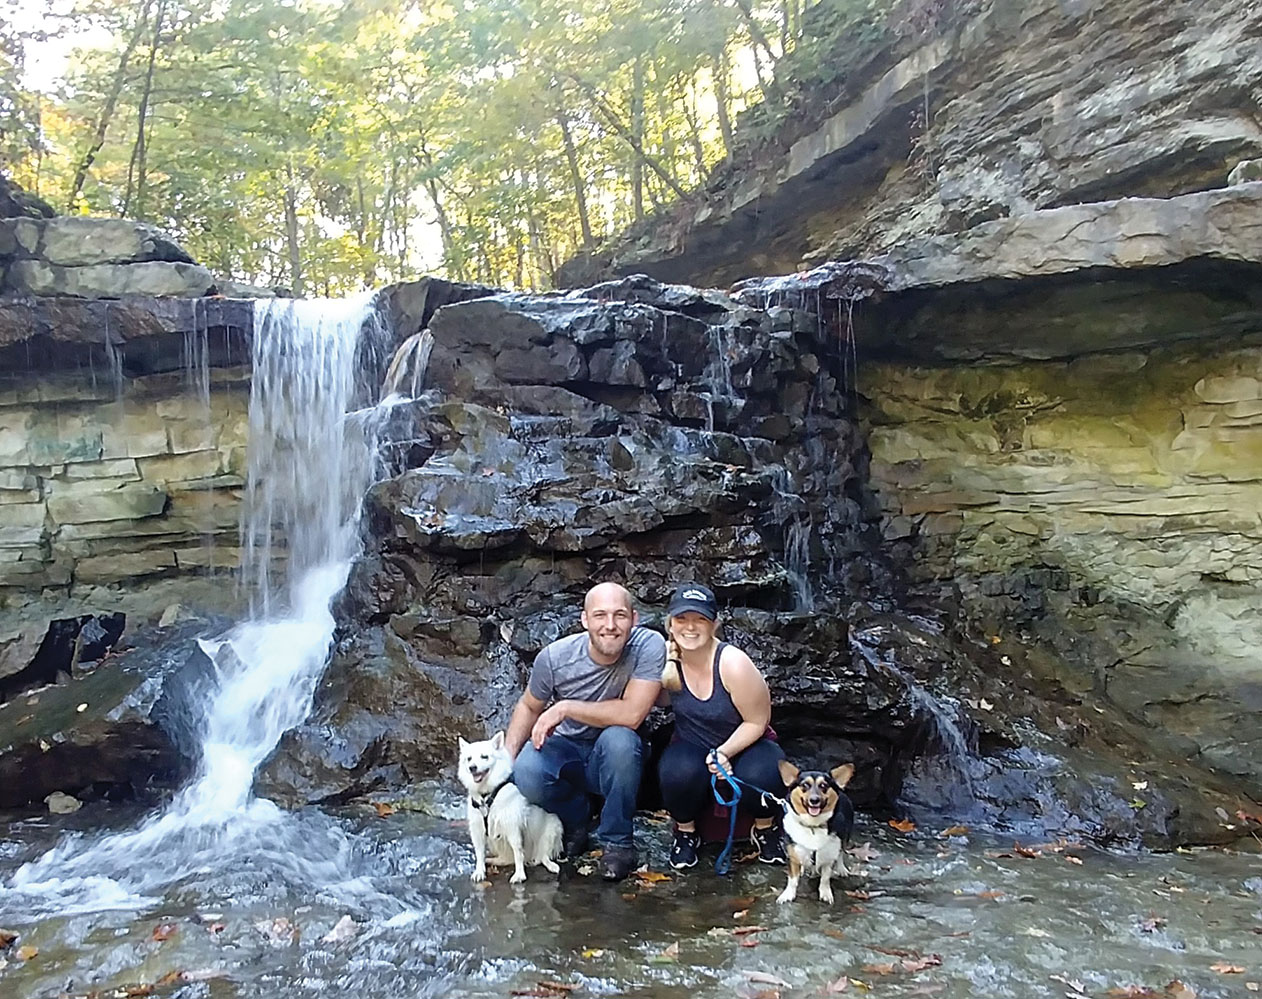 O'Neal camping with her two dogs and her husband. O'Neal went hiking with her husband and her two dogs and found a waterfall.